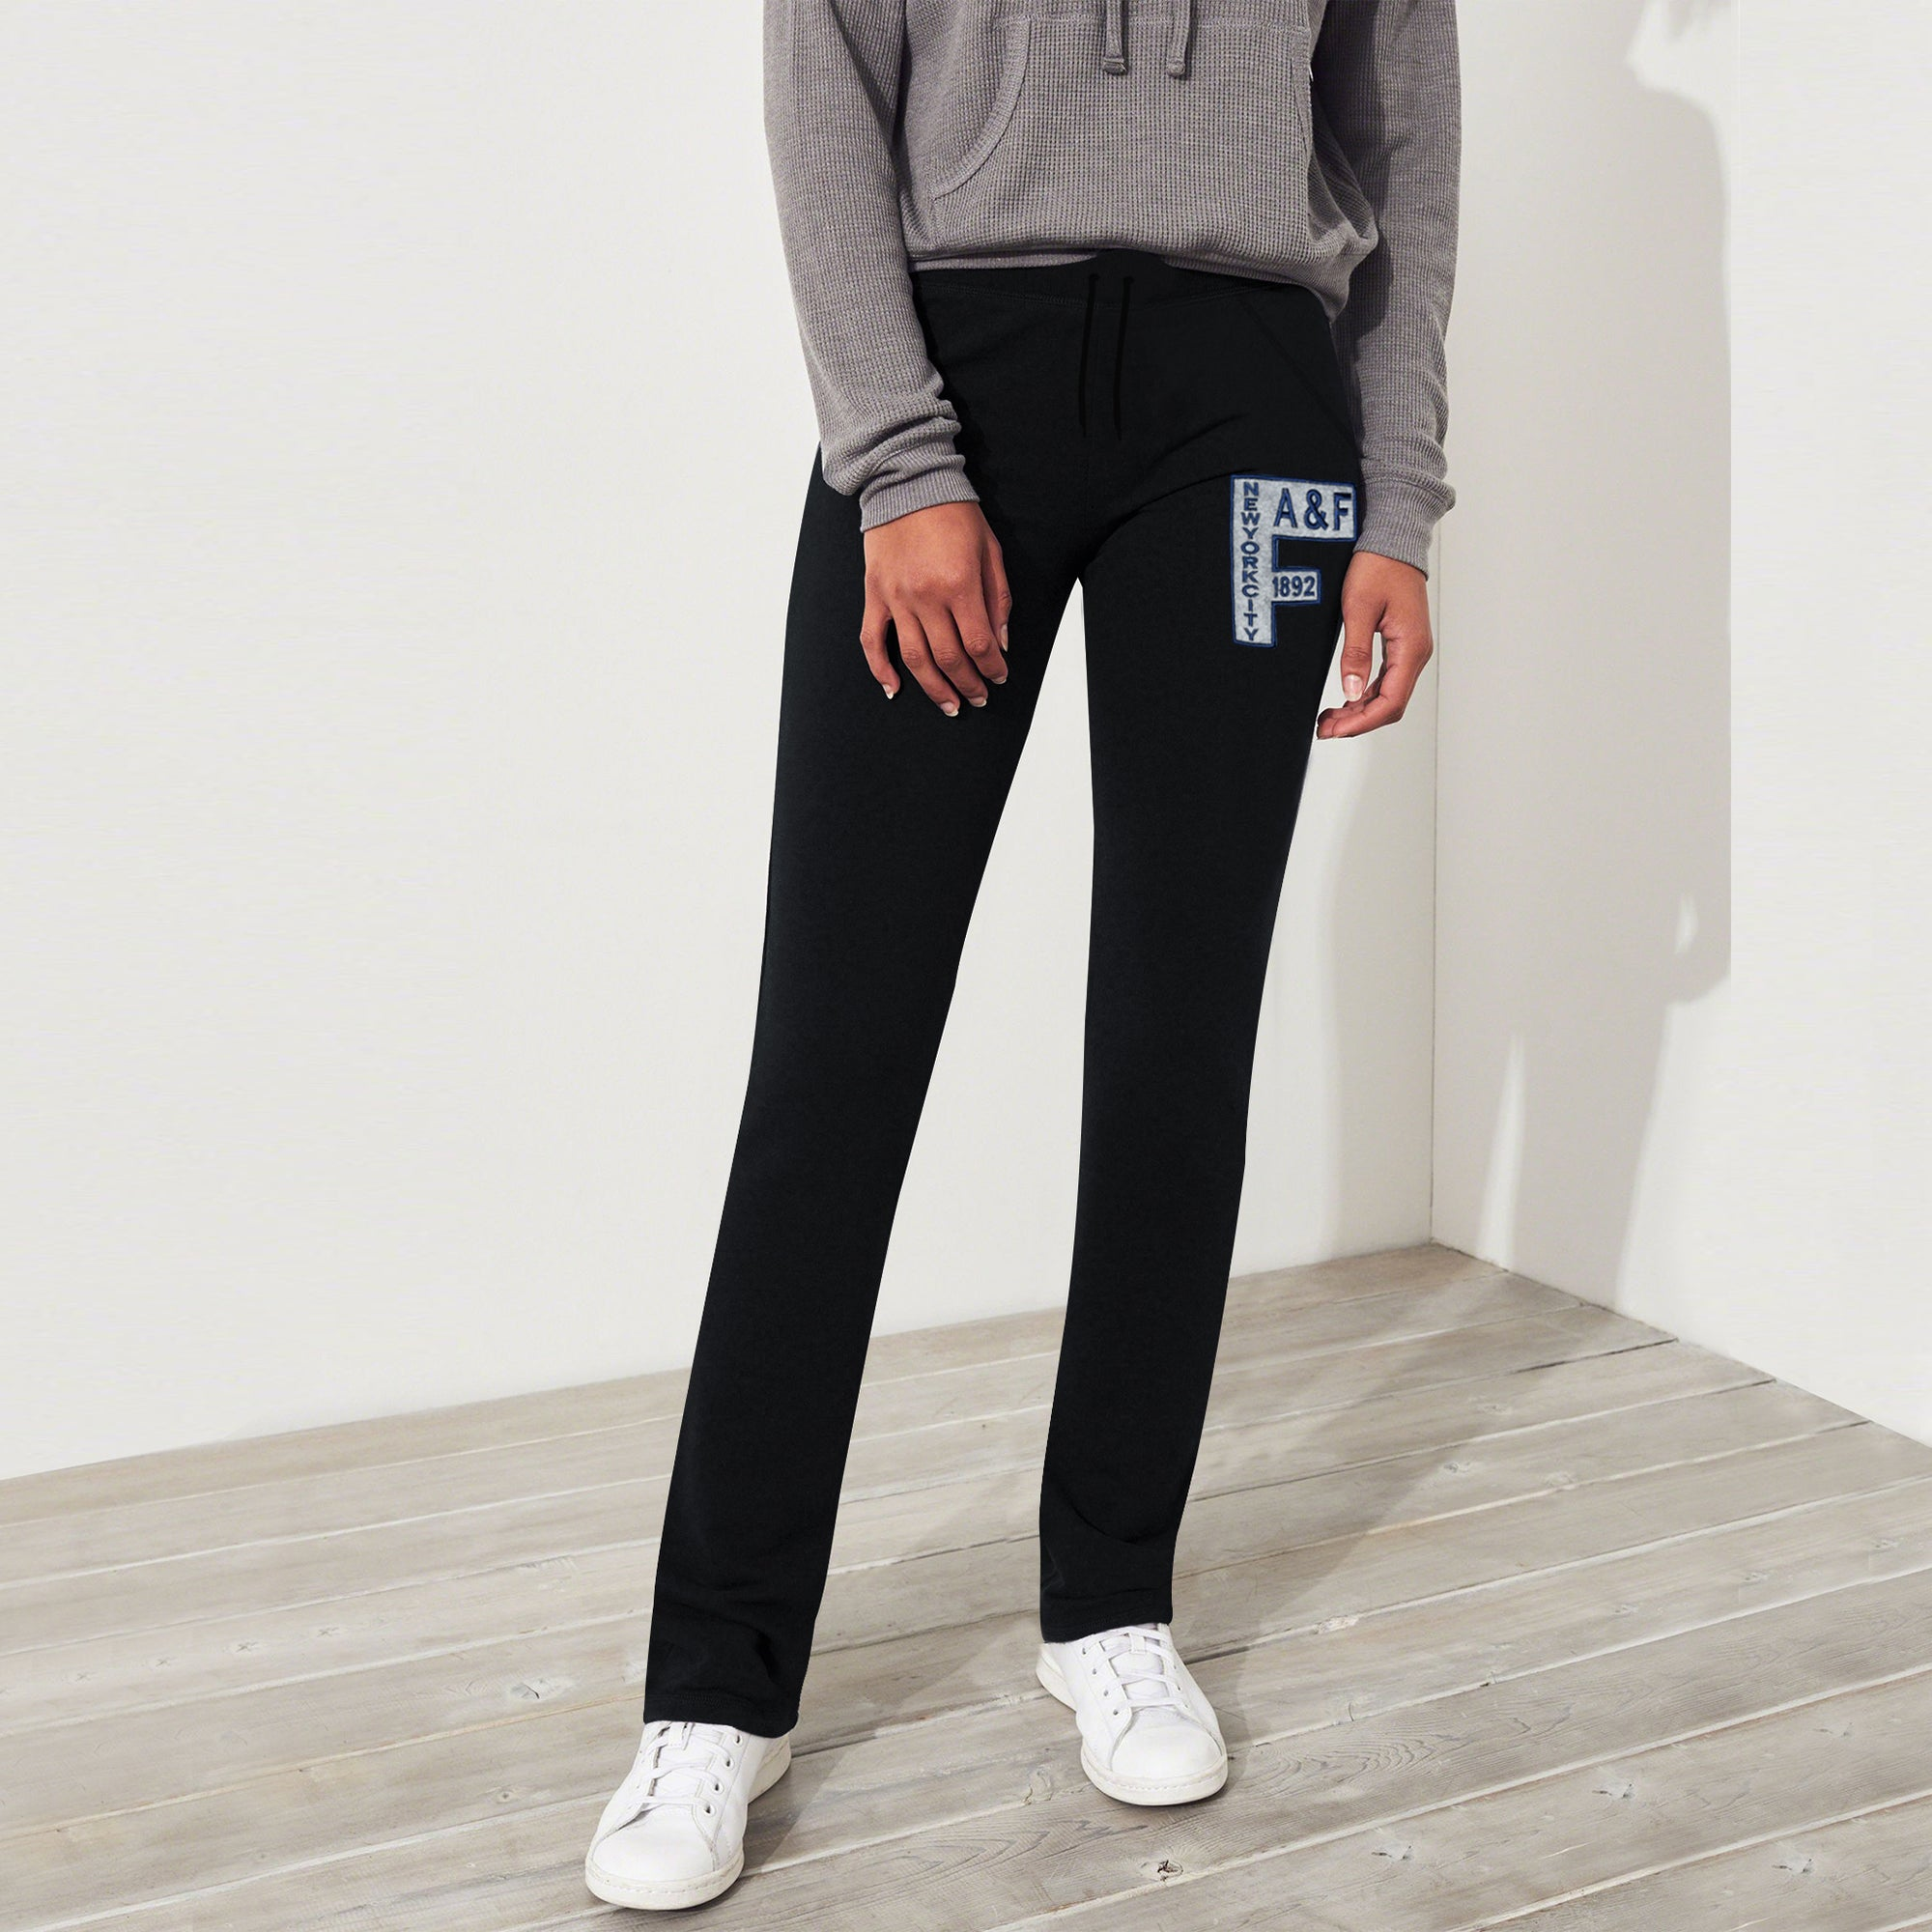 A&F Fleece Straight Fit Jogger Trouser For Ladies-Black-BE7514